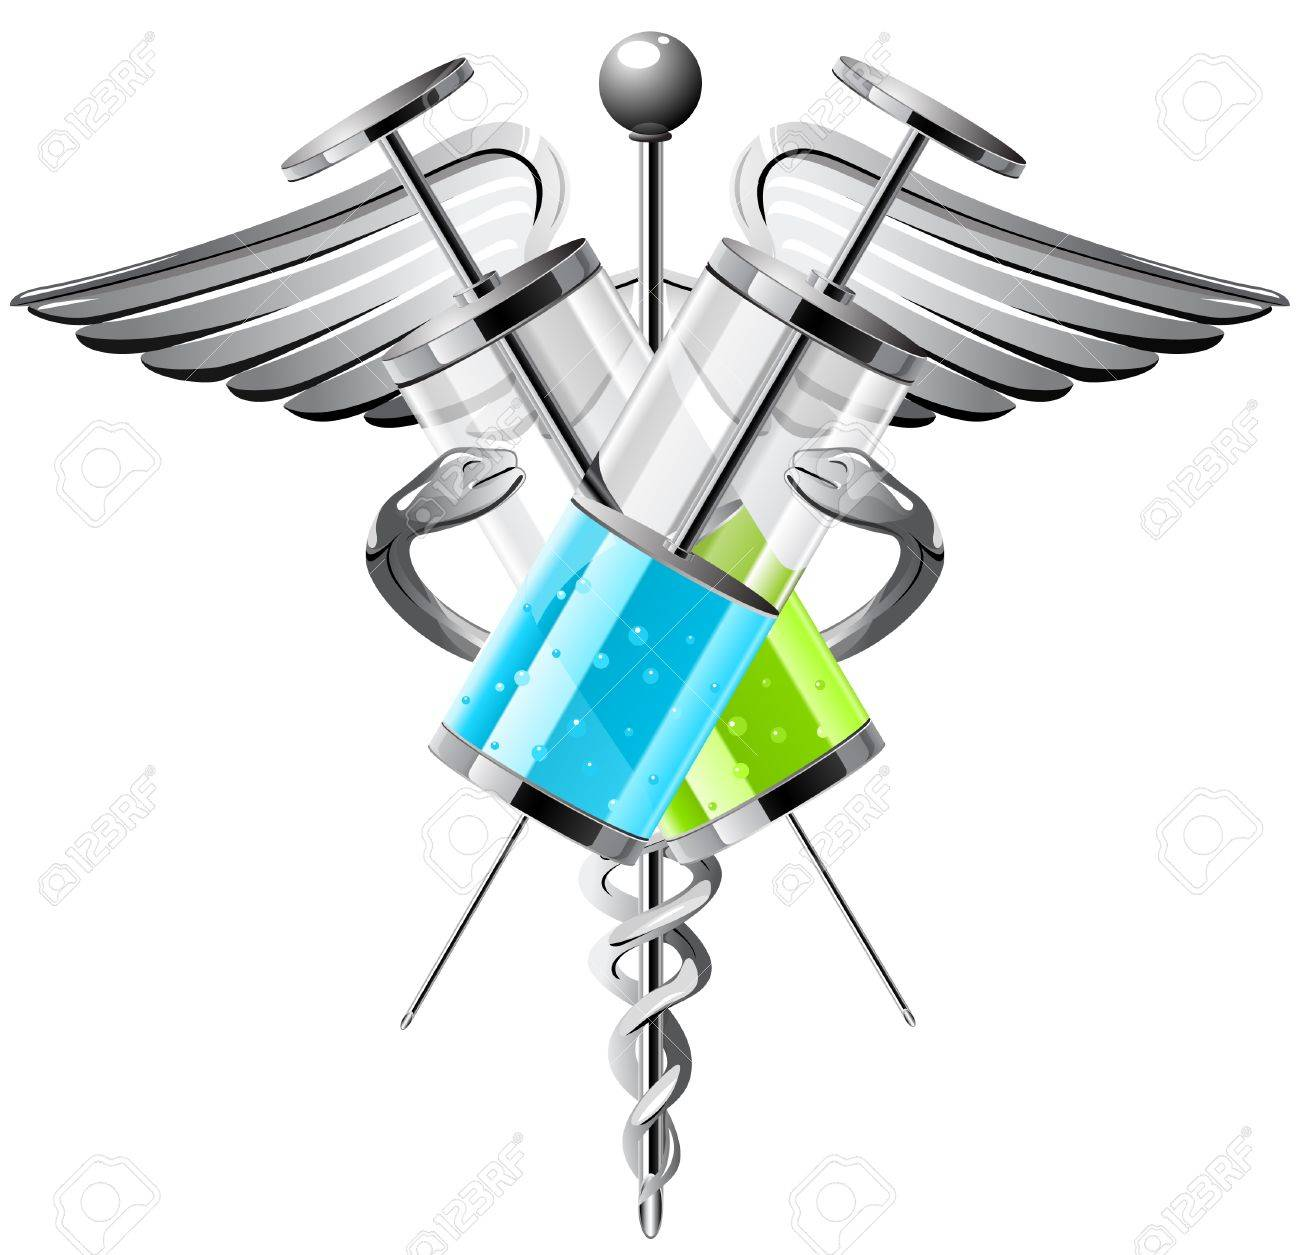 Medical Symbol With Syringes Wings And Snakes Royalty Free